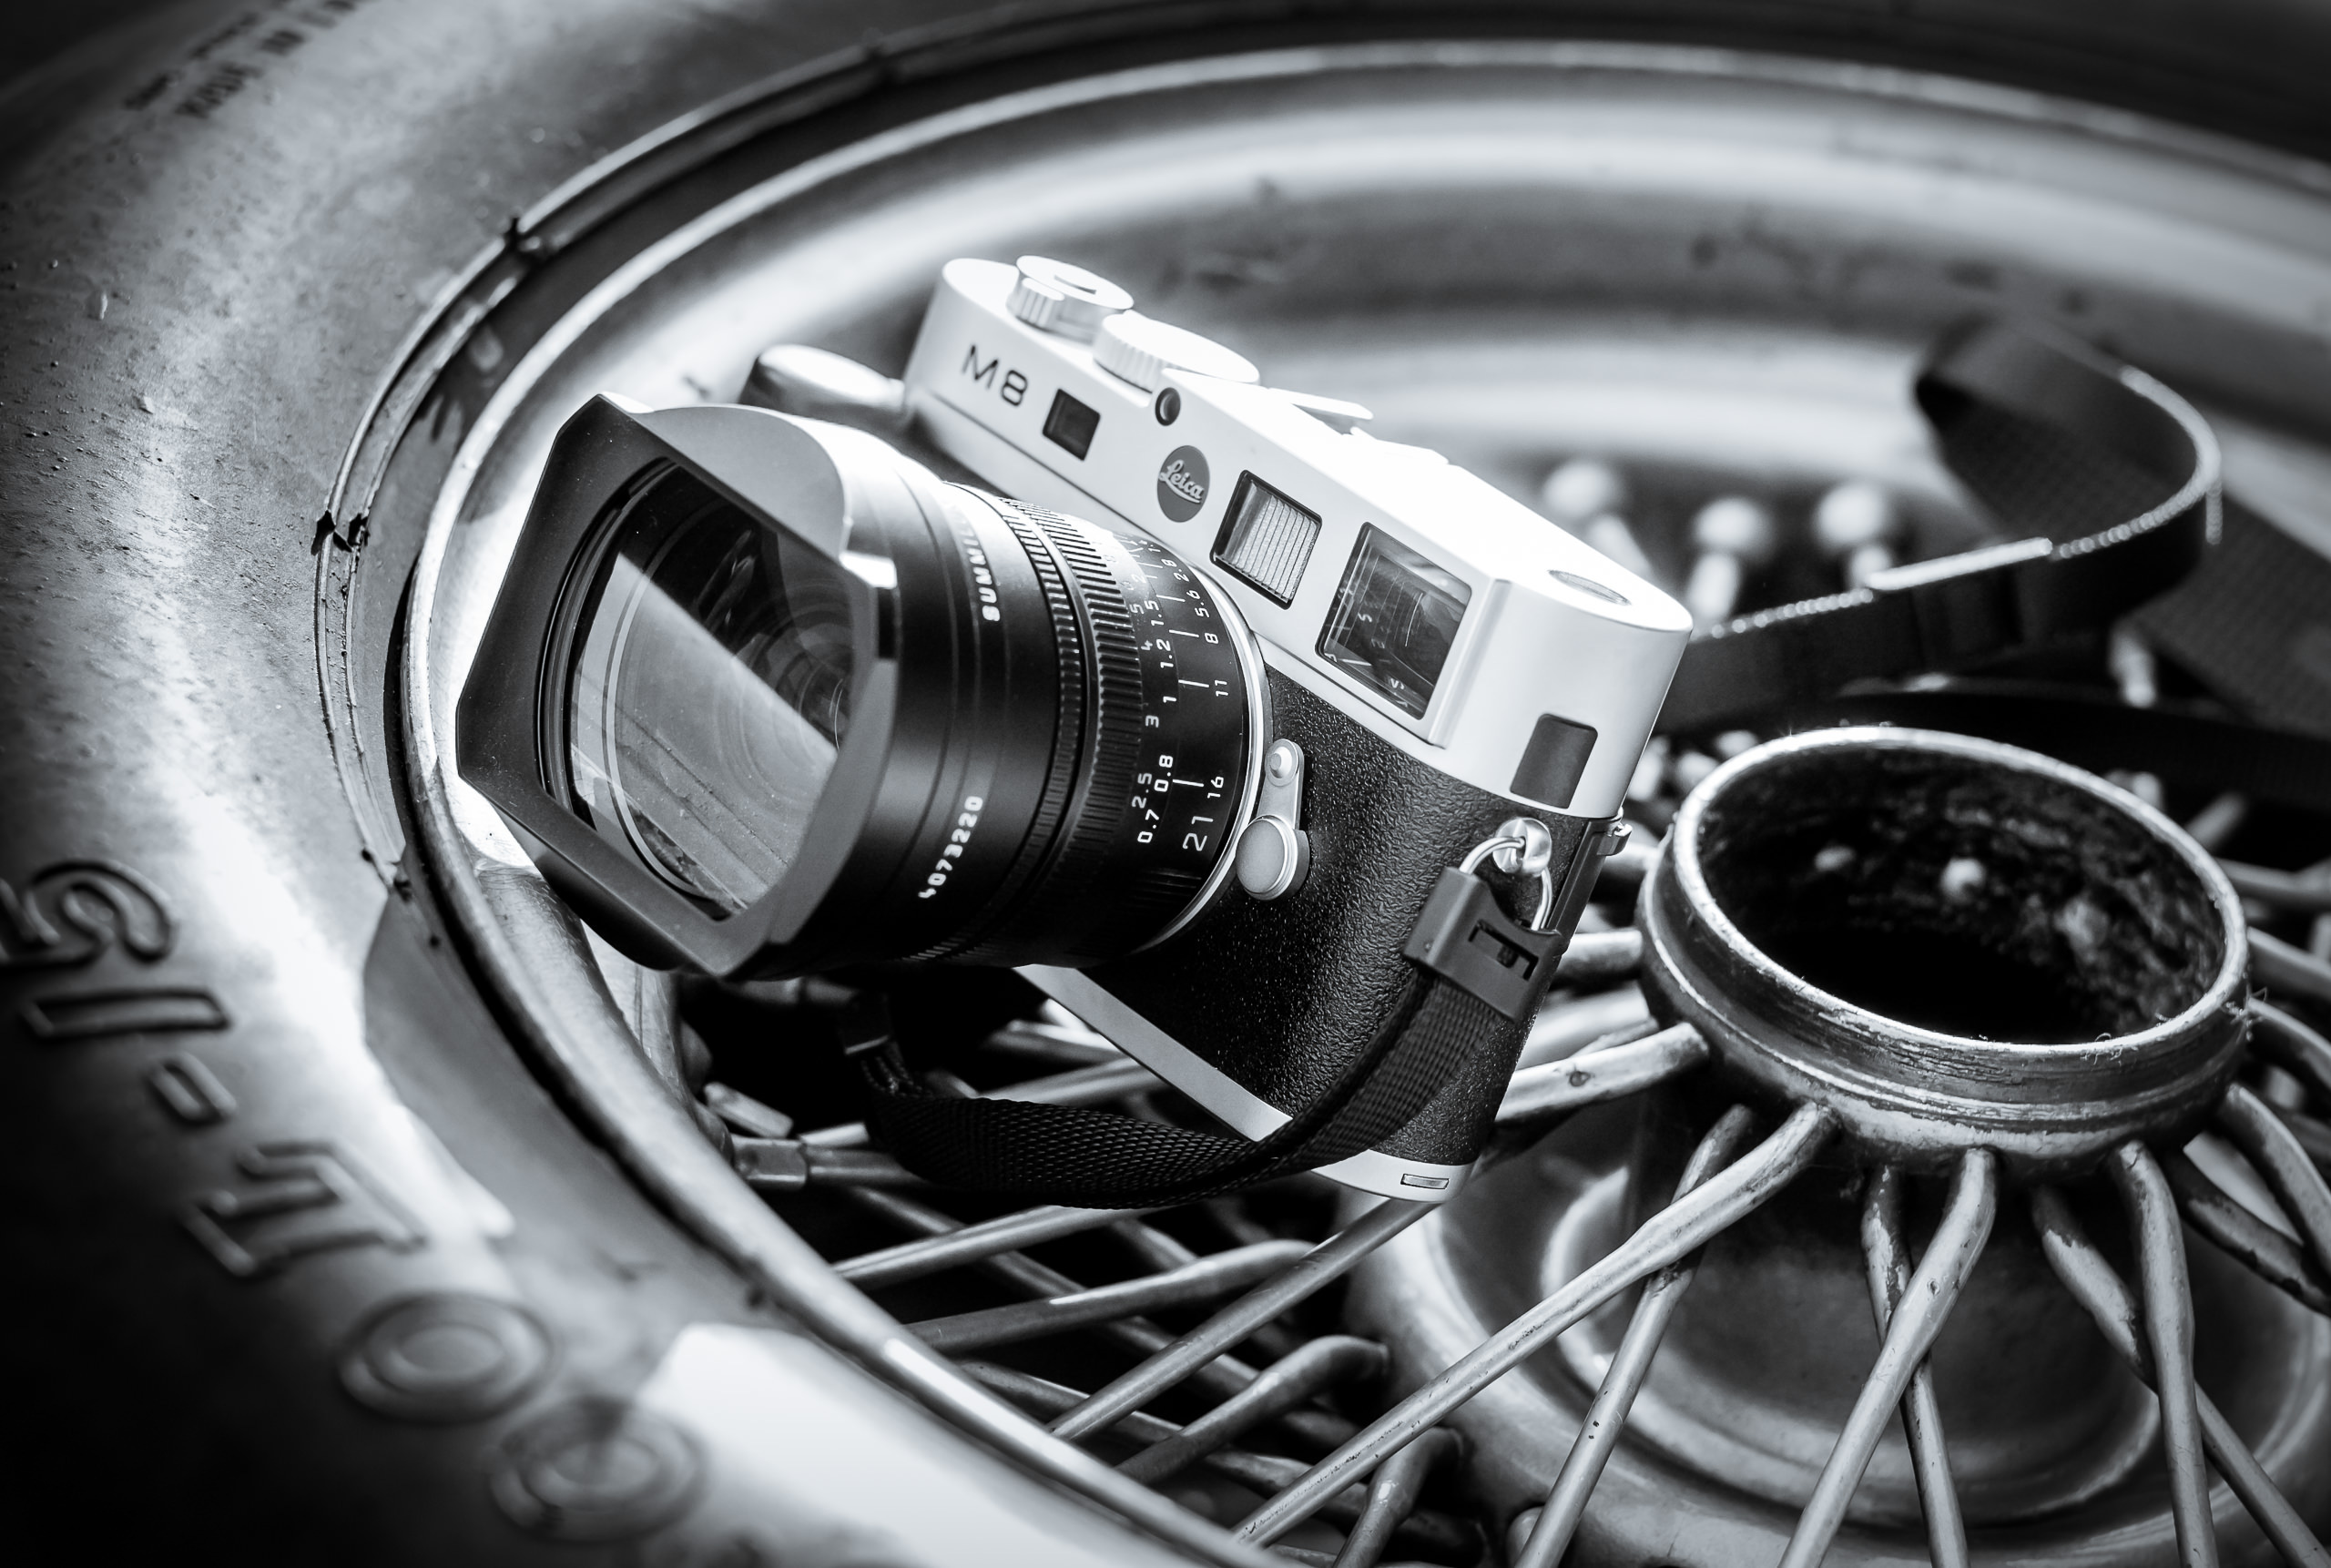 Wayfinder Workshop 21Mm Summilux Goodwood Revival M8 Wire Wheel By Brett Leica Photographer